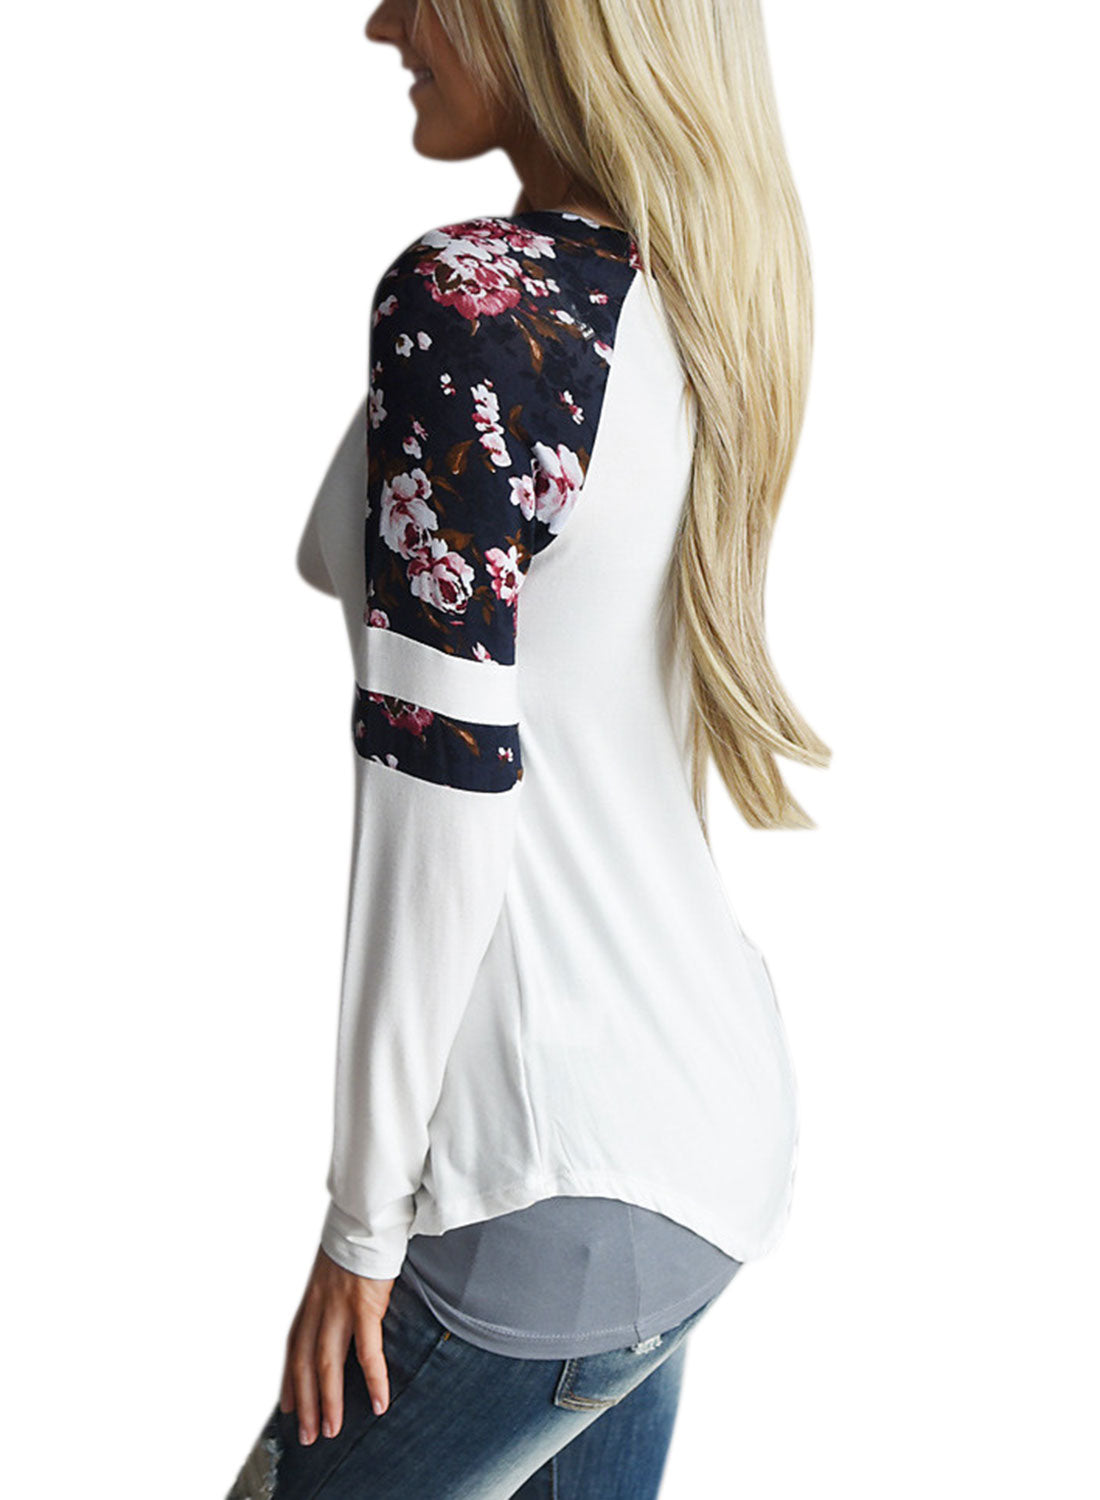 ZXZY Women Crew Neck Floral Print Long Sleeve Tops